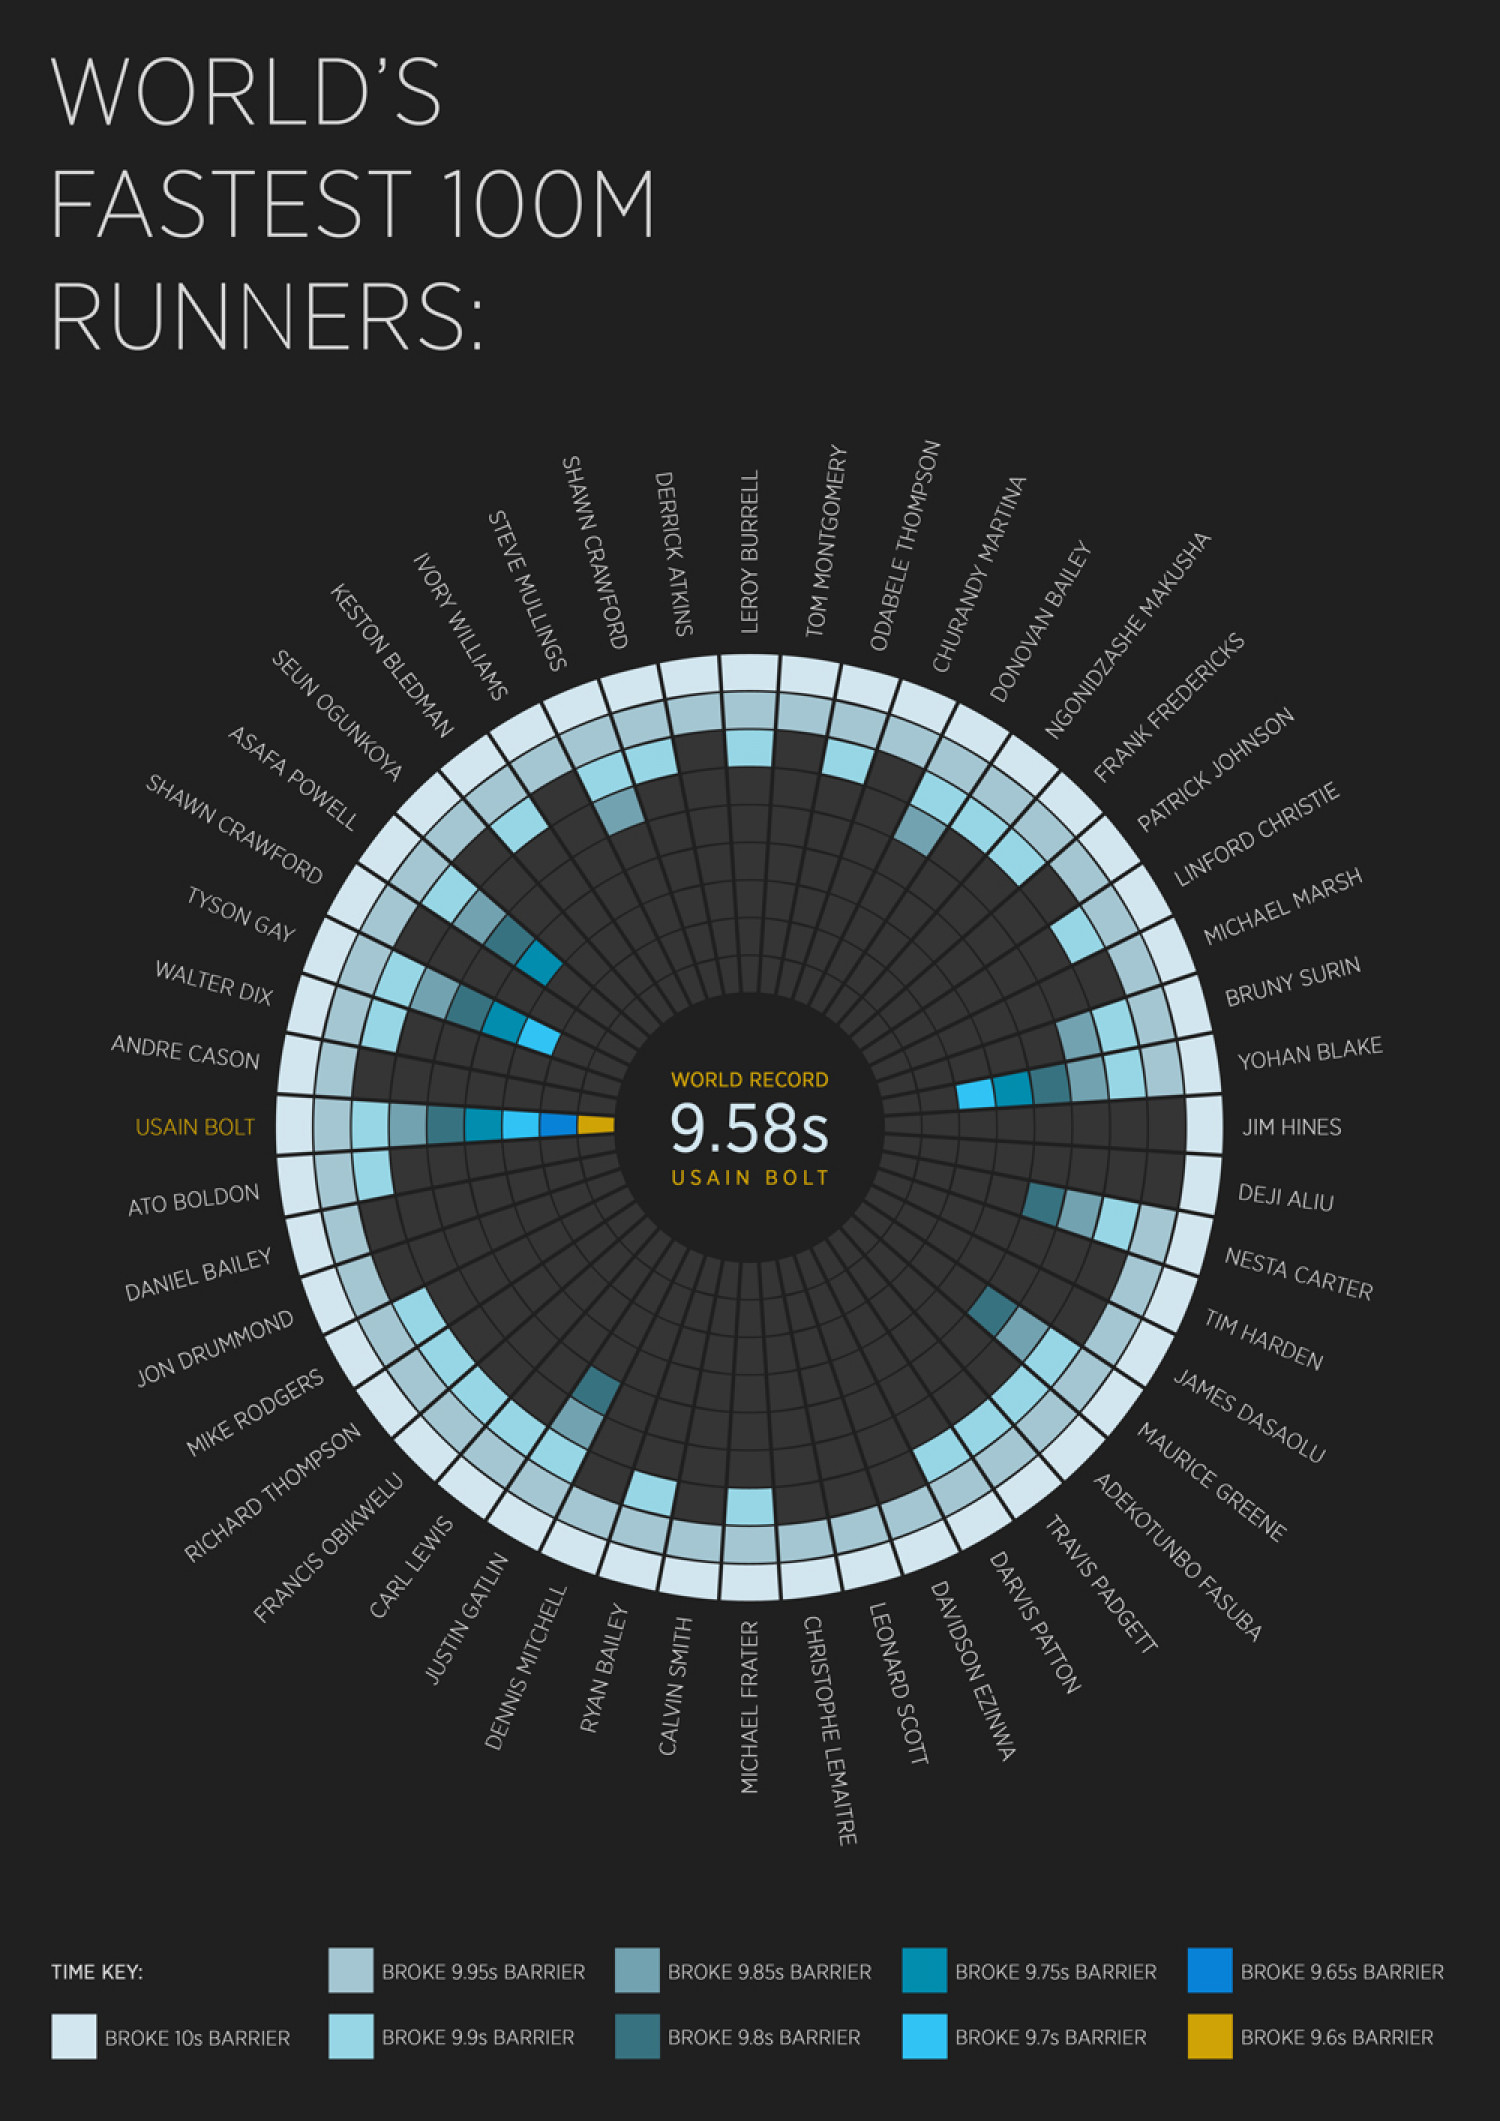 World's Fastest 100m Runners Infographic